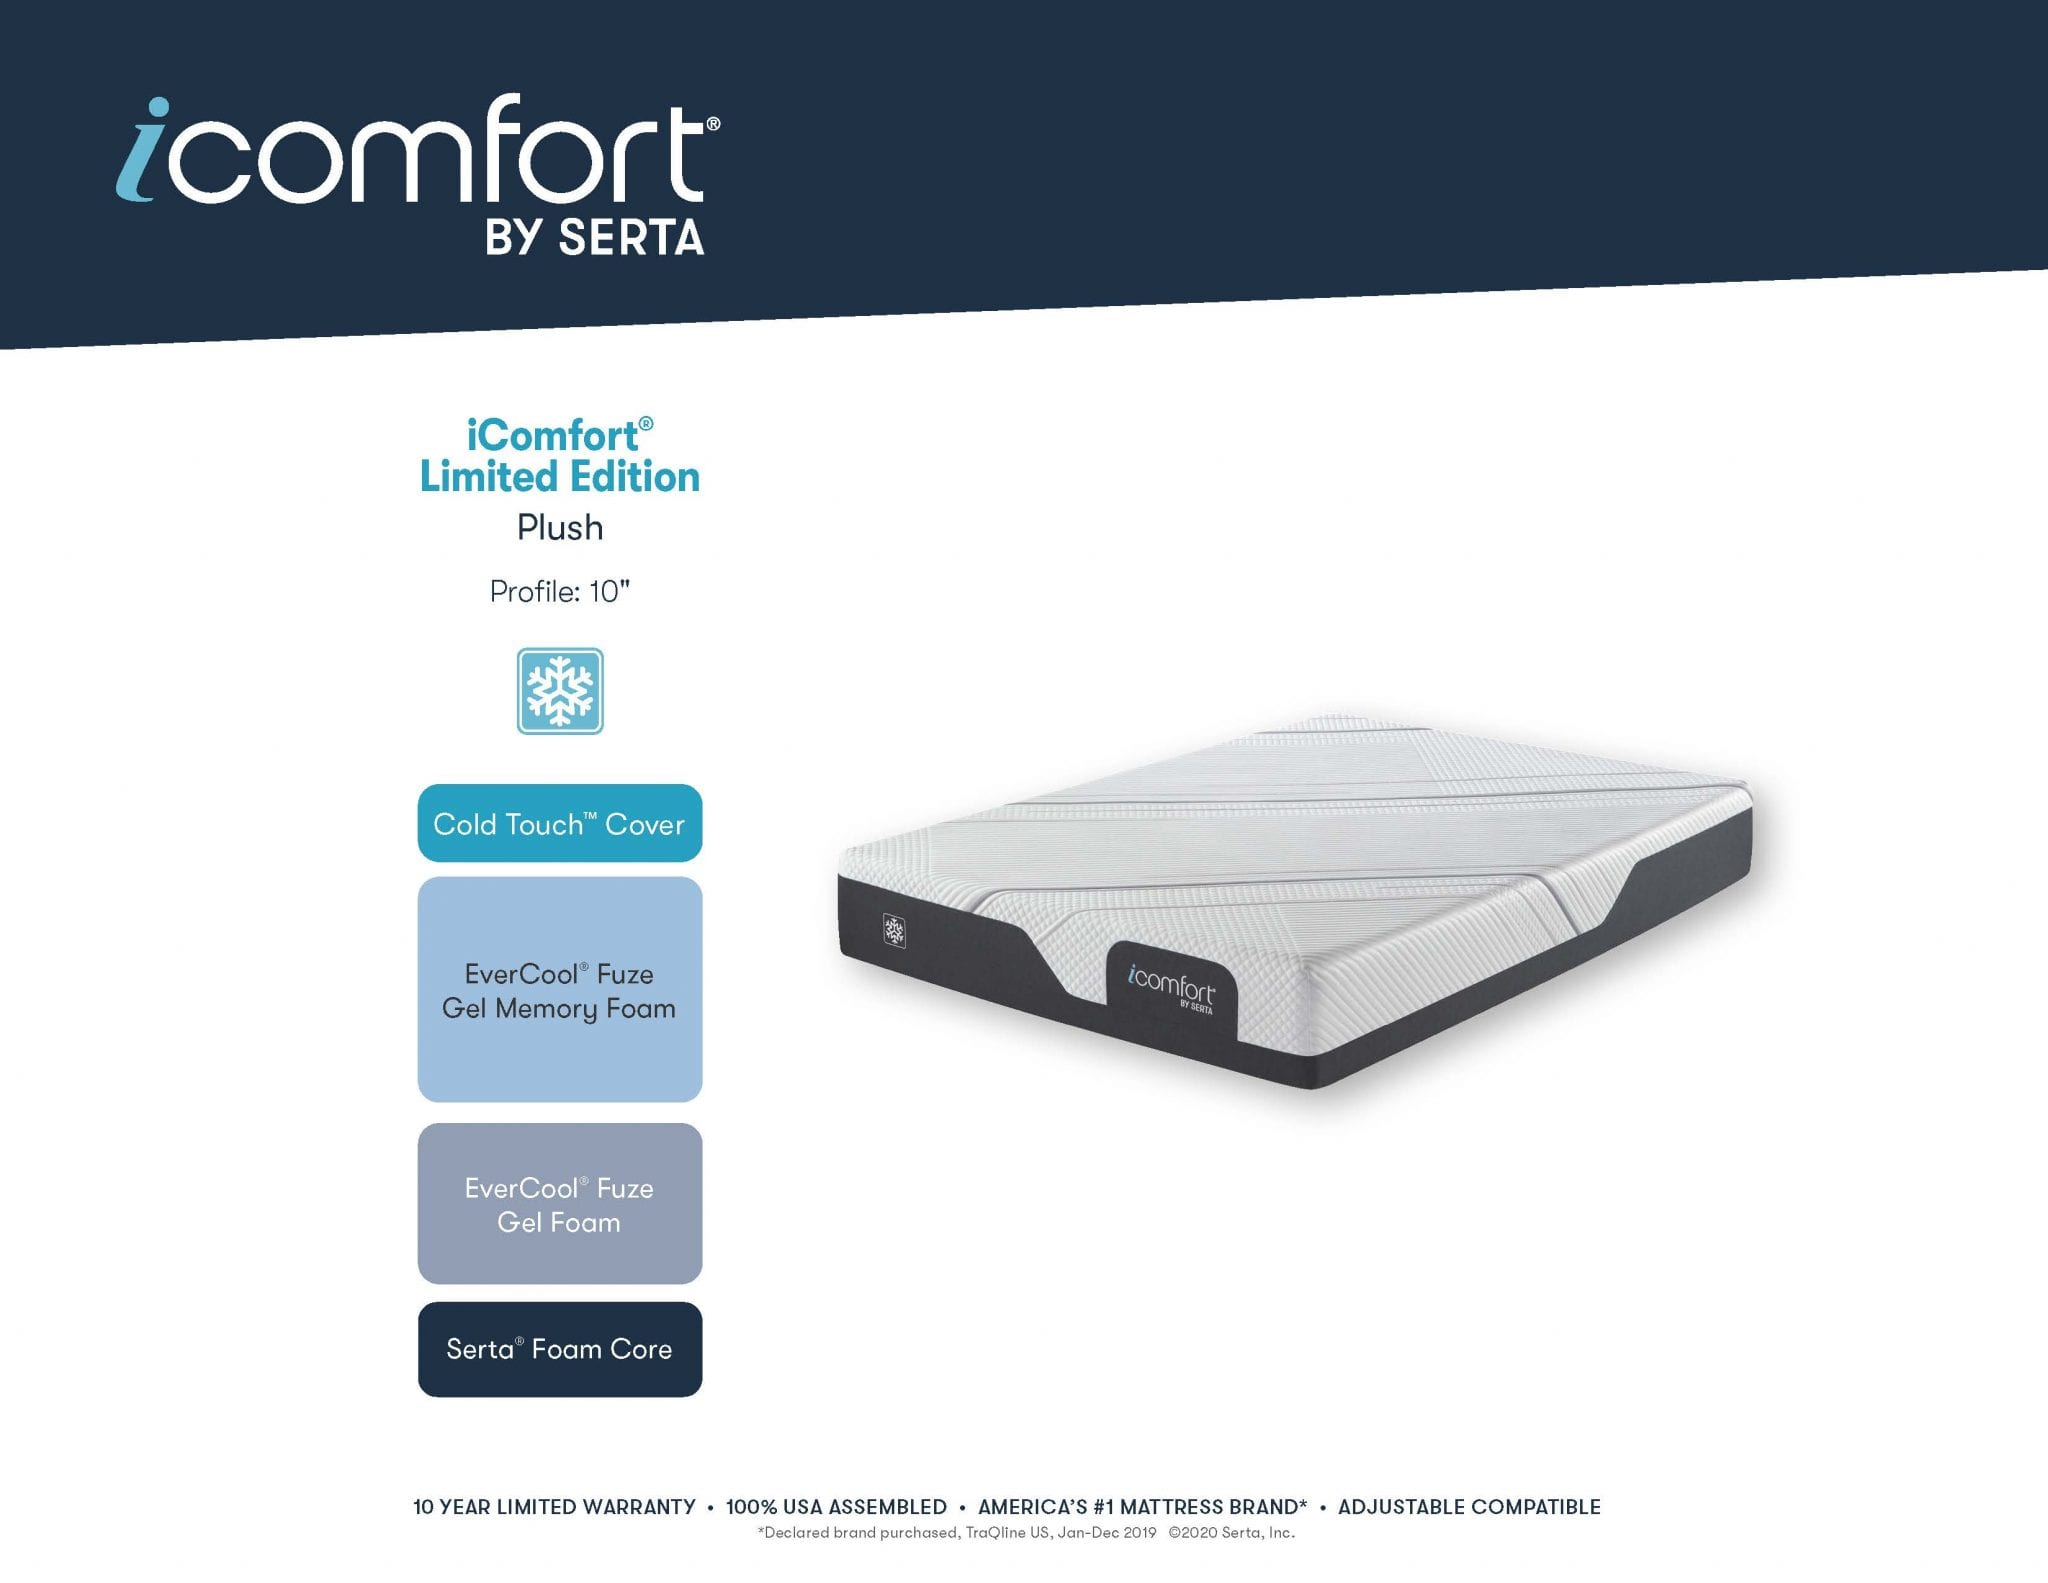 Features of the Serta iComfort Limited Edition Plush mattress